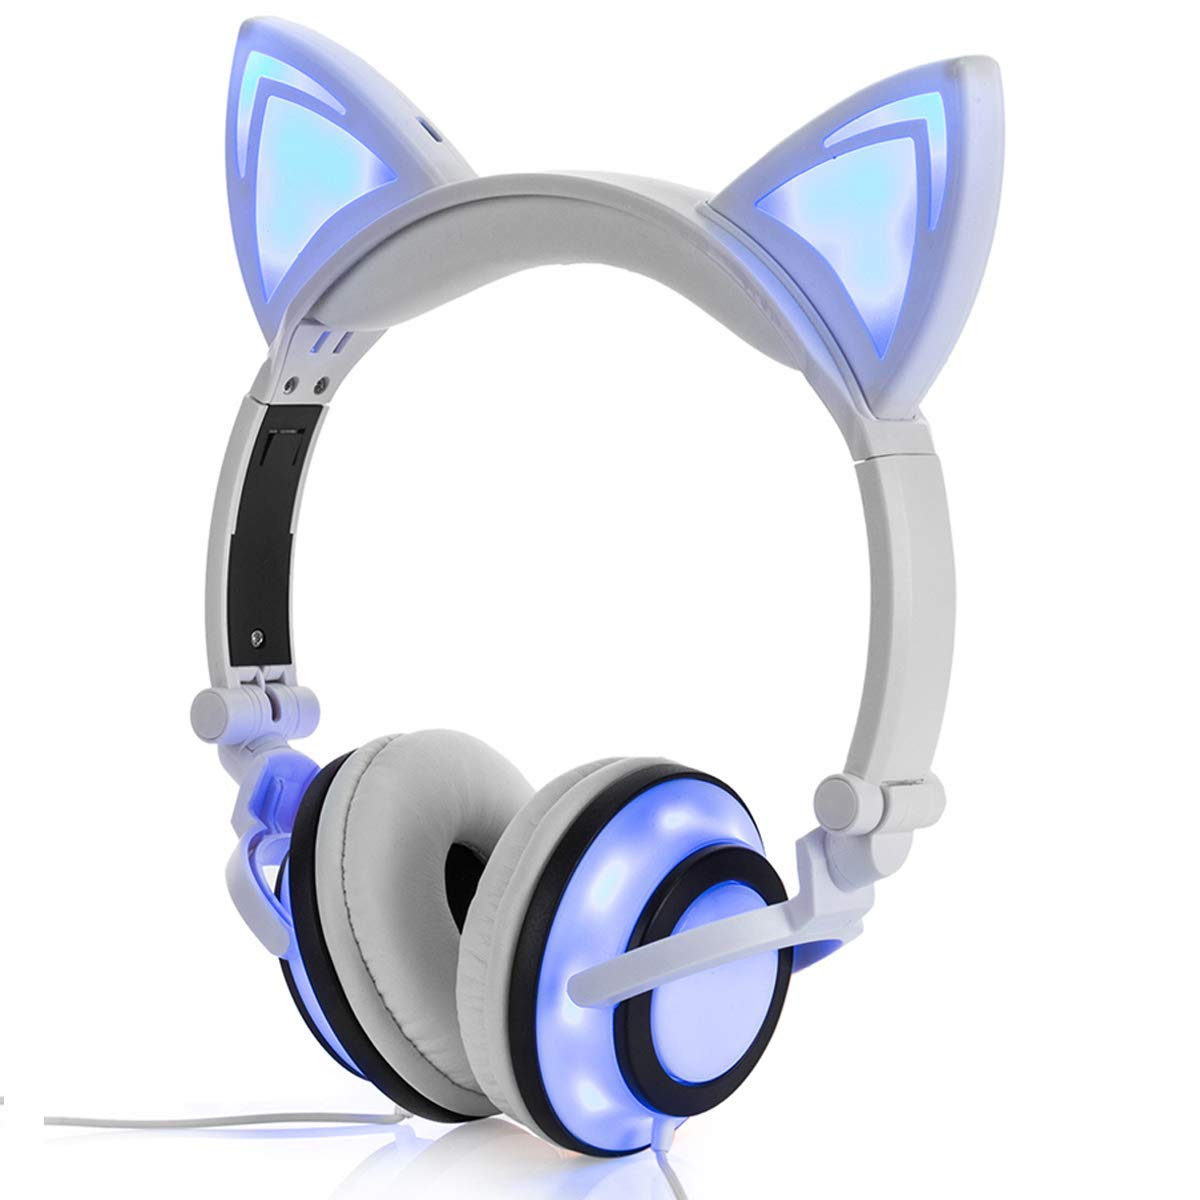 Cute Cat Ear Headset LED Light with USB Chargeable Foldable Earphones for Ipad,Tablet,Computer,Mobile Phone  white